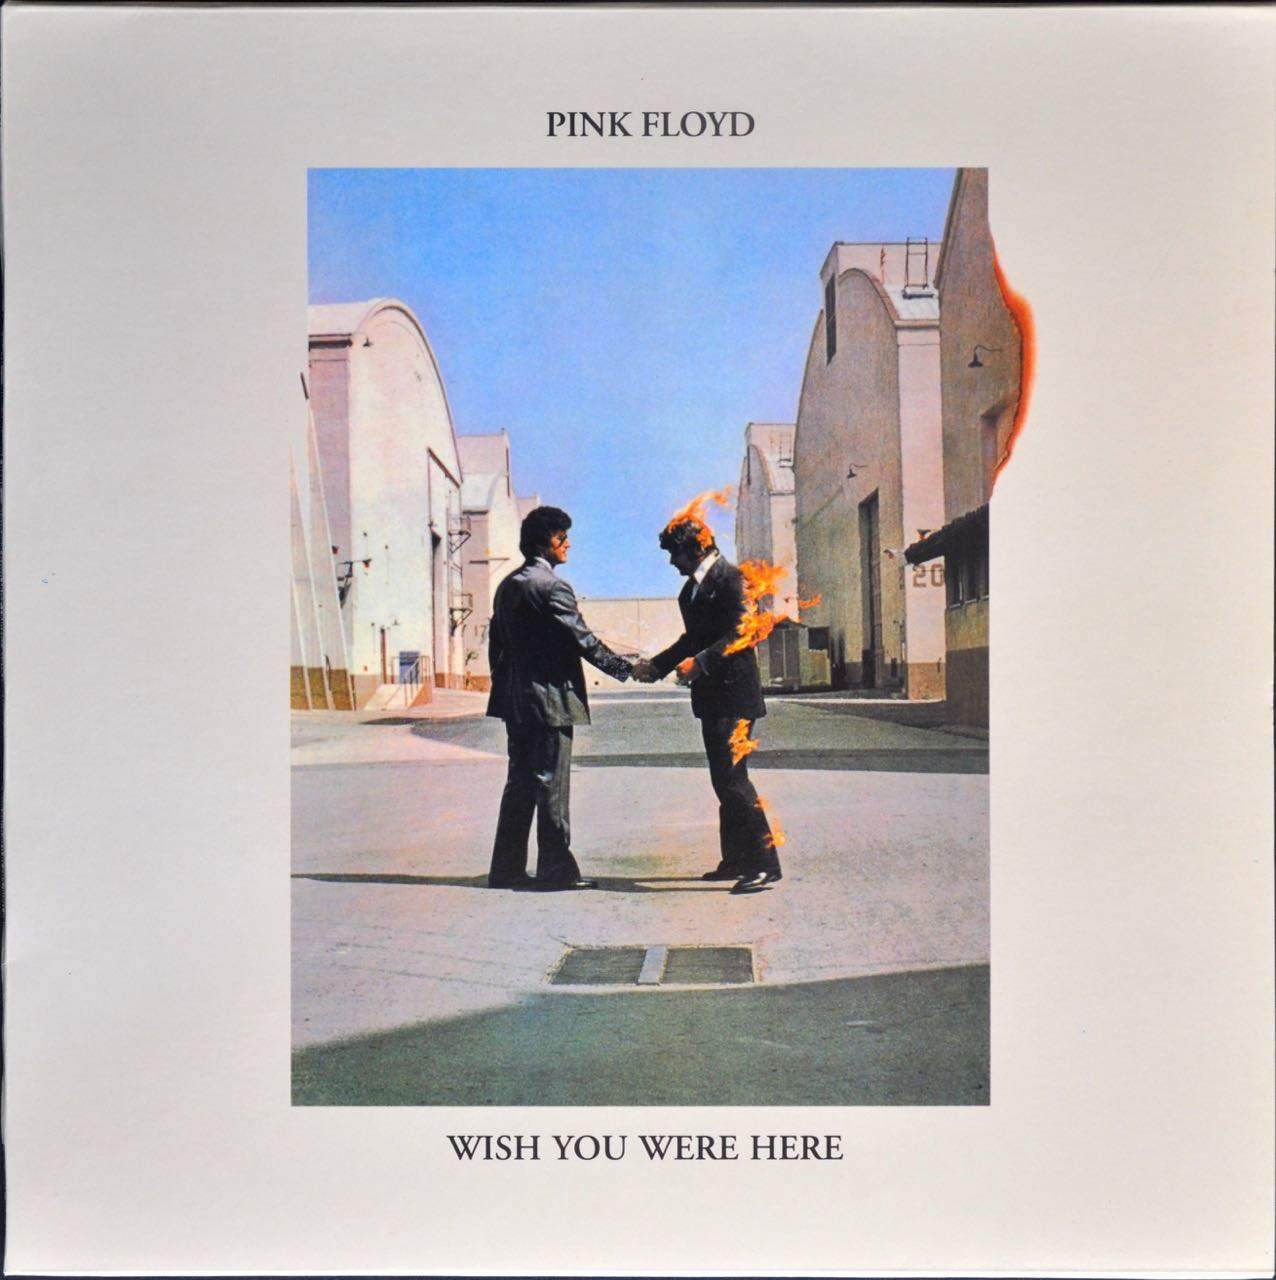 Wish you were here 1975